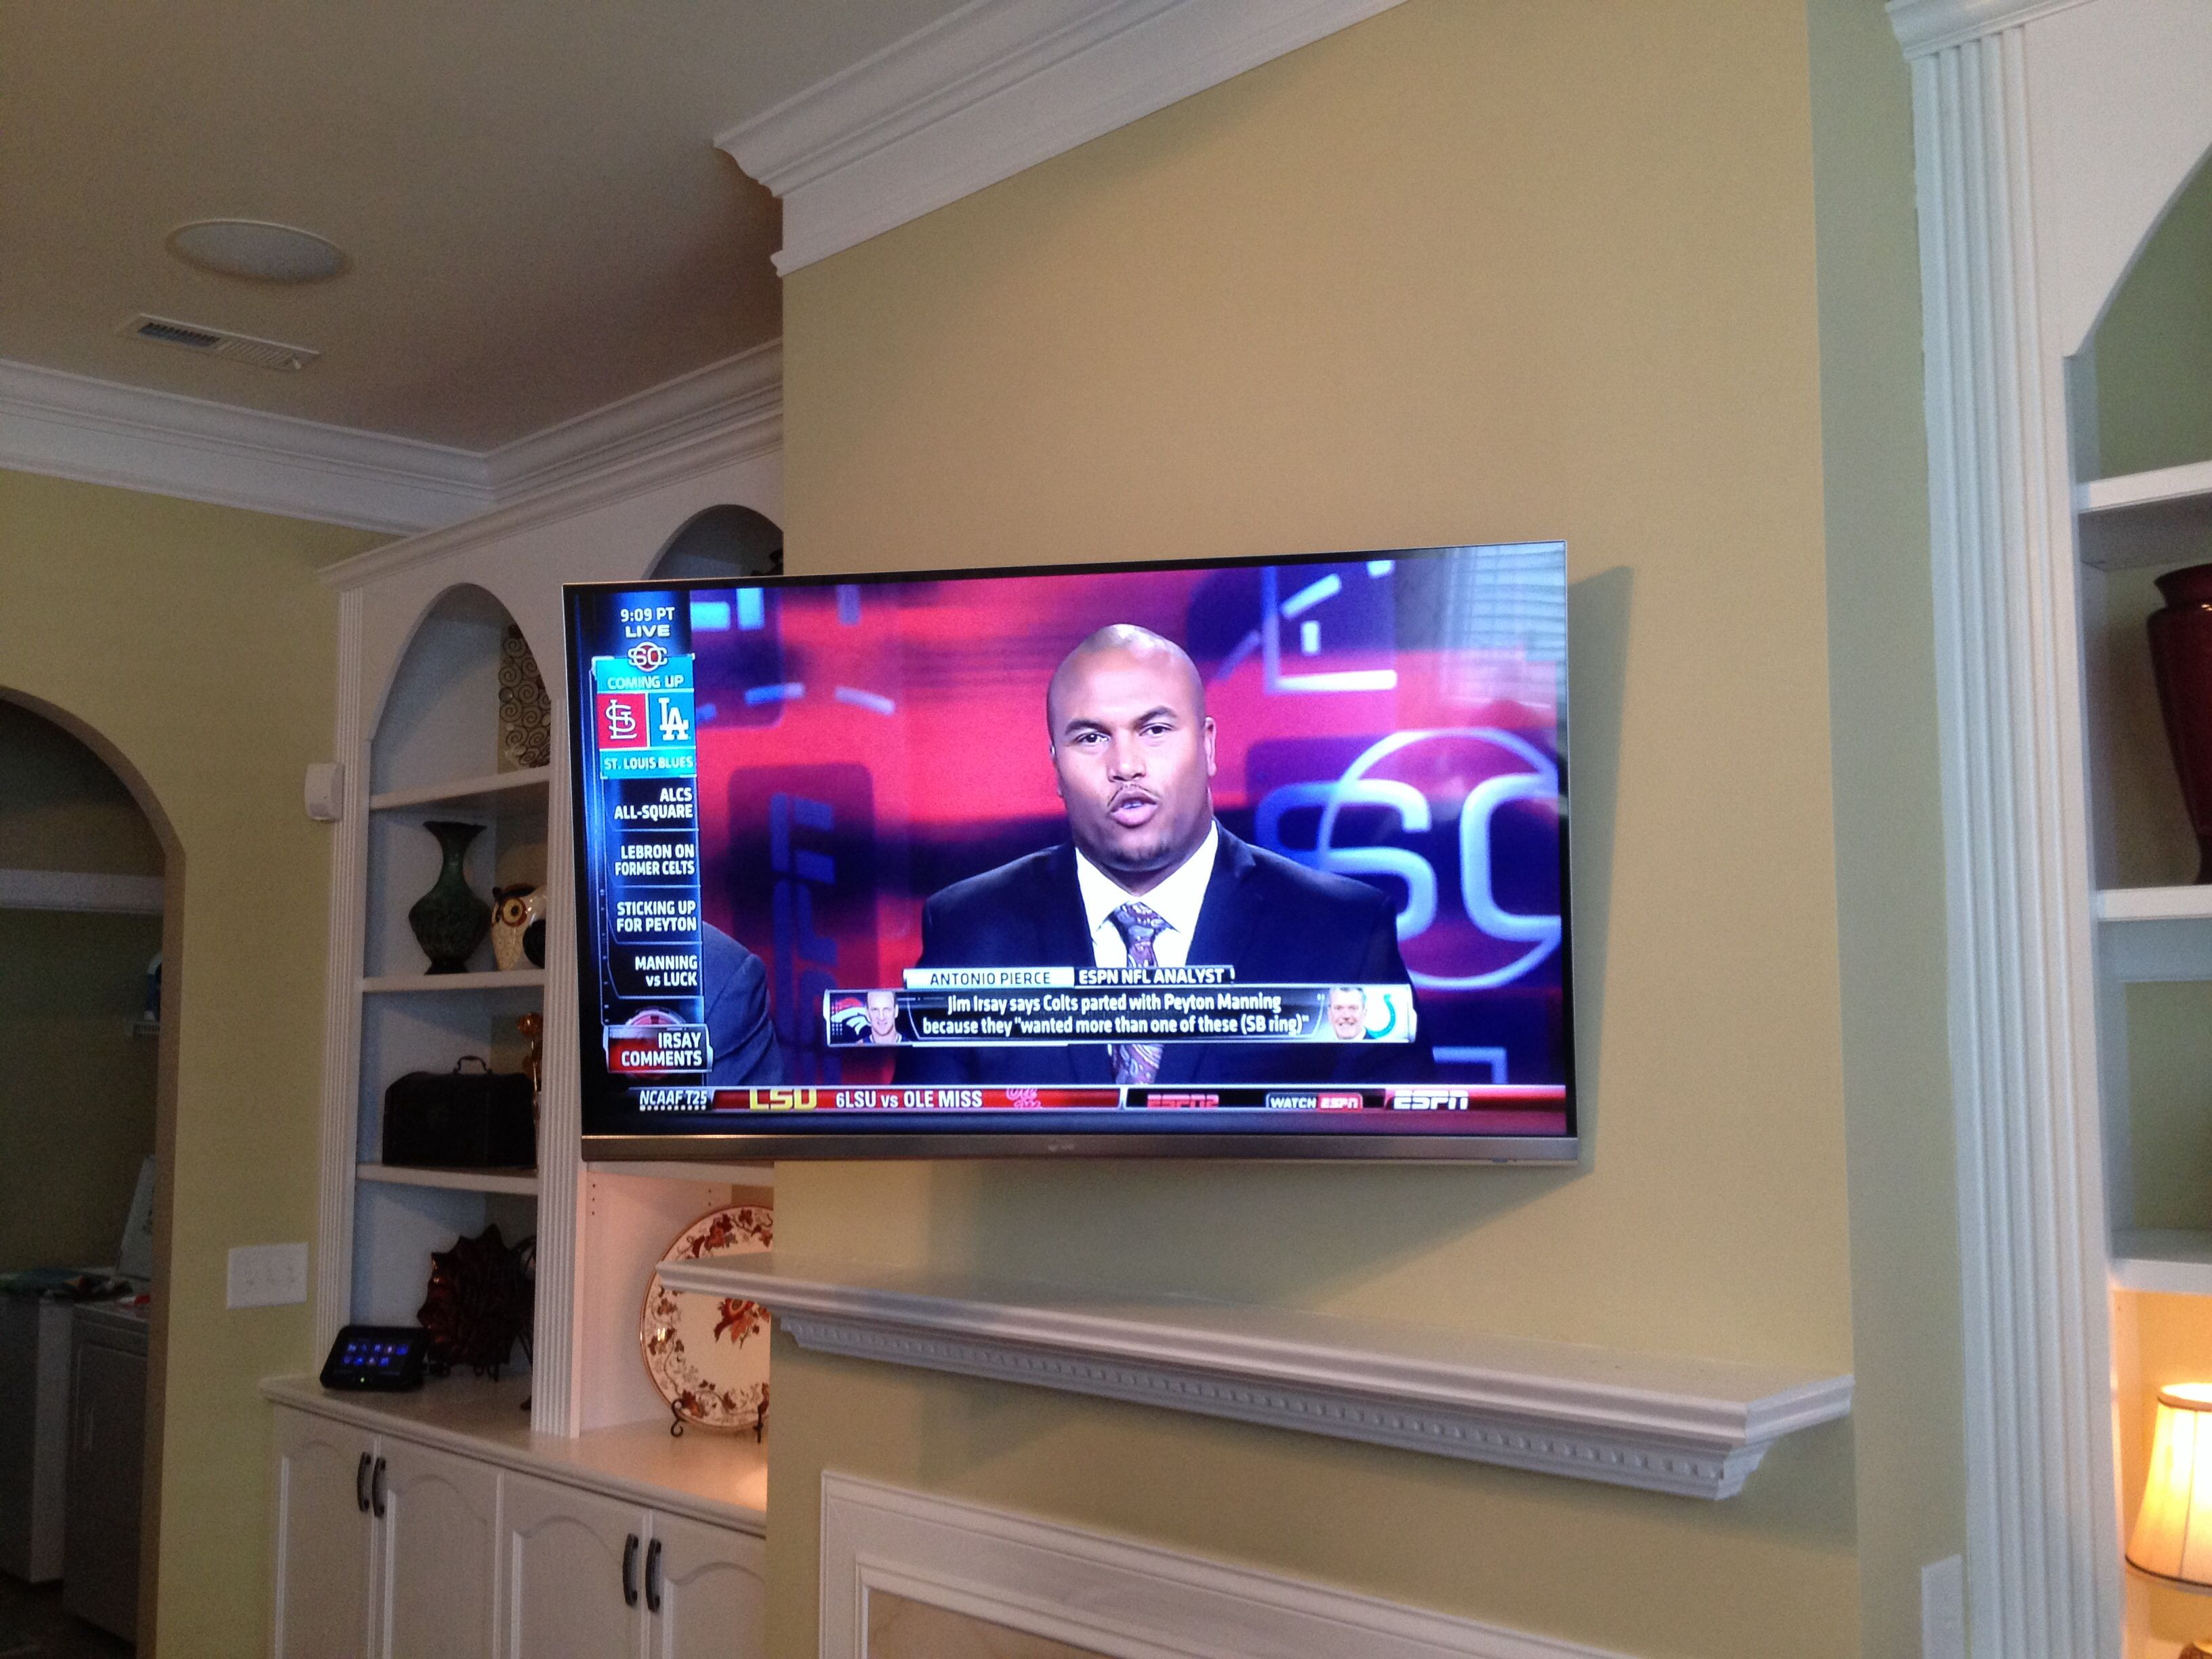 Full Motion Tv Mount Installation Over The Fireplace Tv Above Fireplace Http Tvoverthefireplace Com